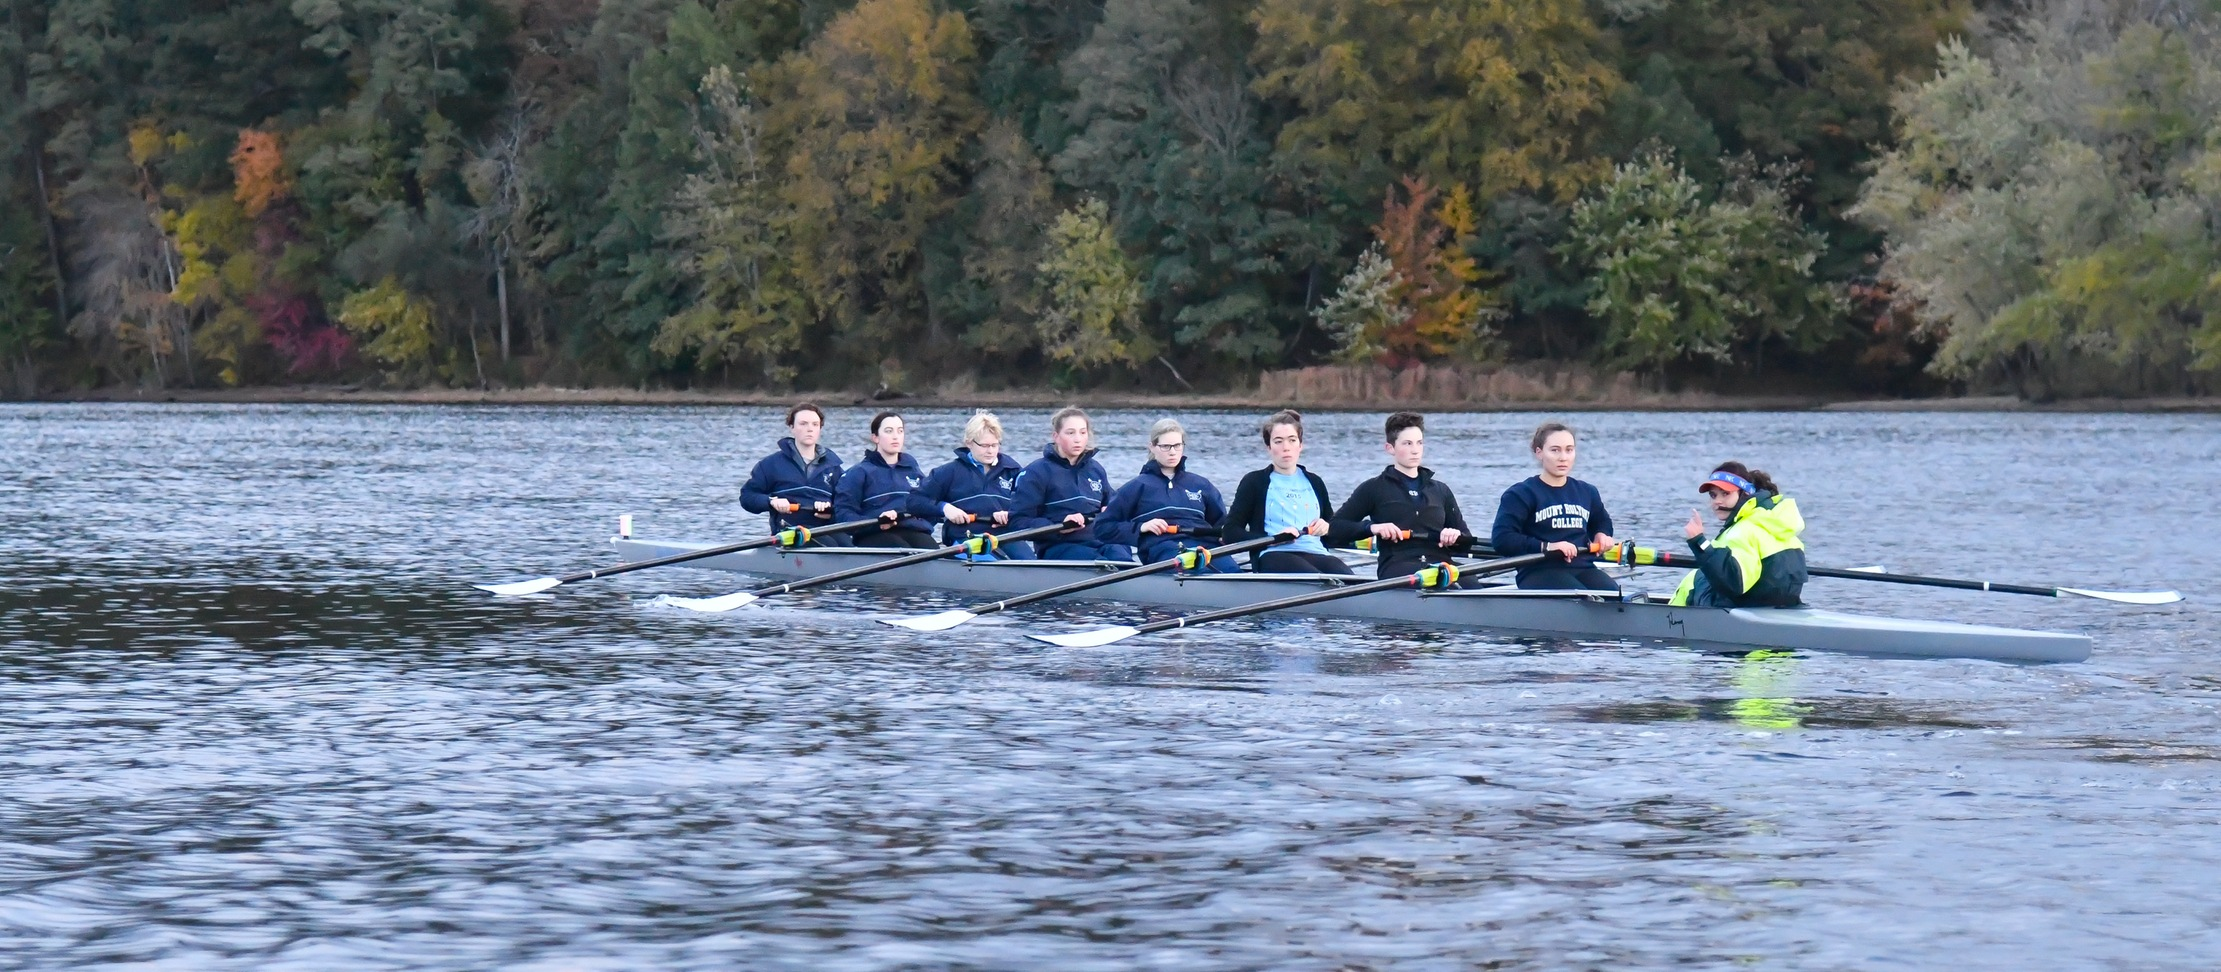 Rowing Has Impressive Showing at Head of the Riverfront